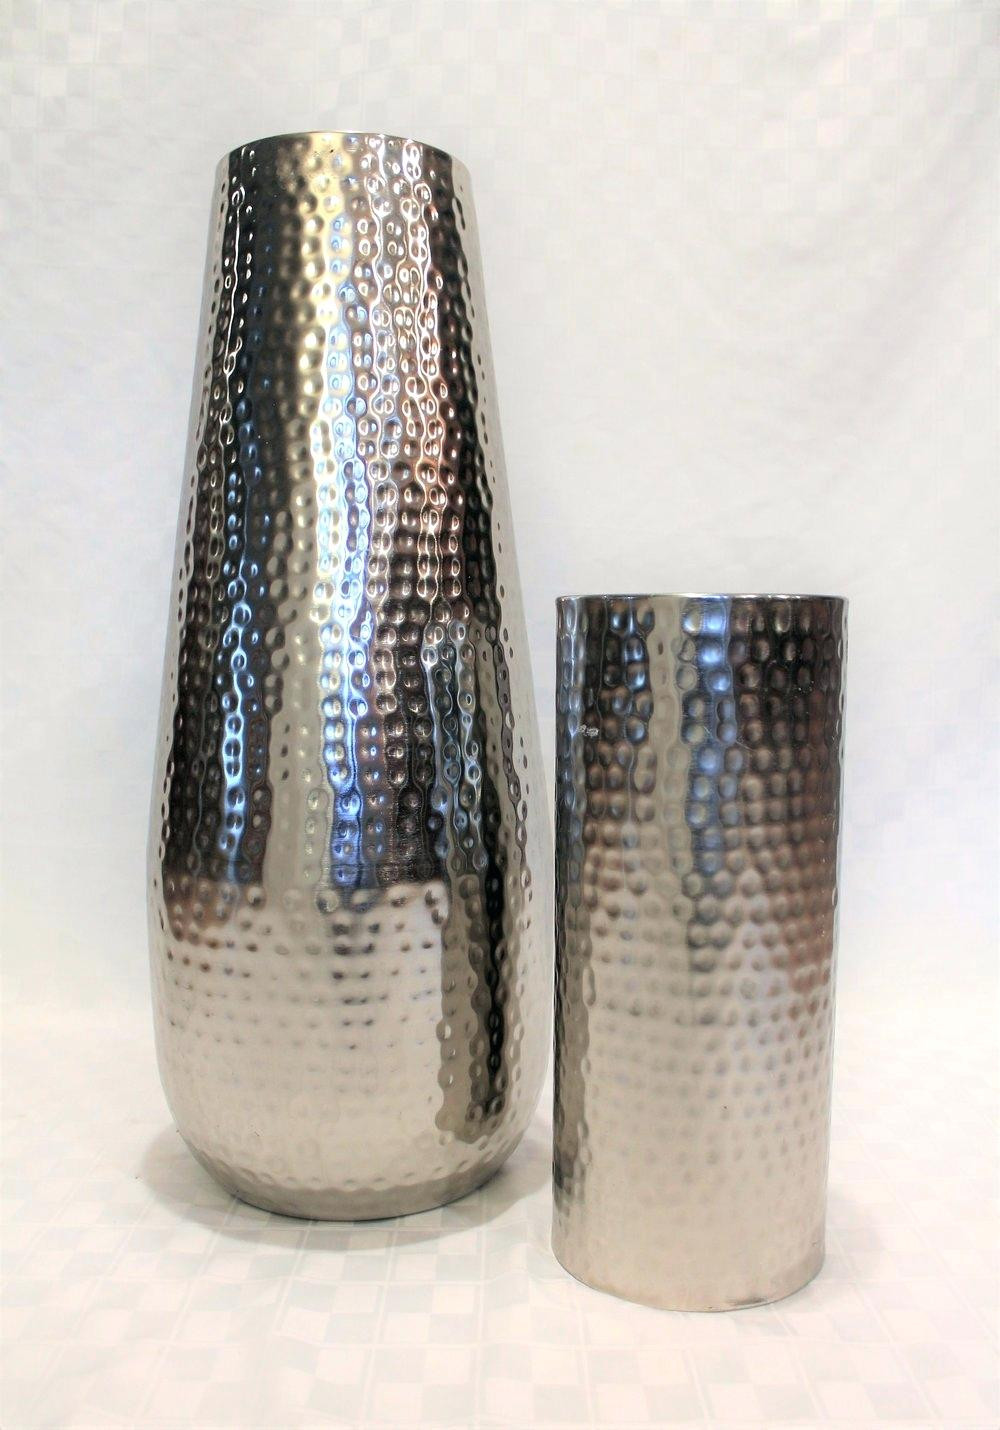 Antique Mercury Glass Vases Of Silver Vases Large wholesale Glass Bulk Cheap Cleanwaternetwork Fl org Throughout Silver